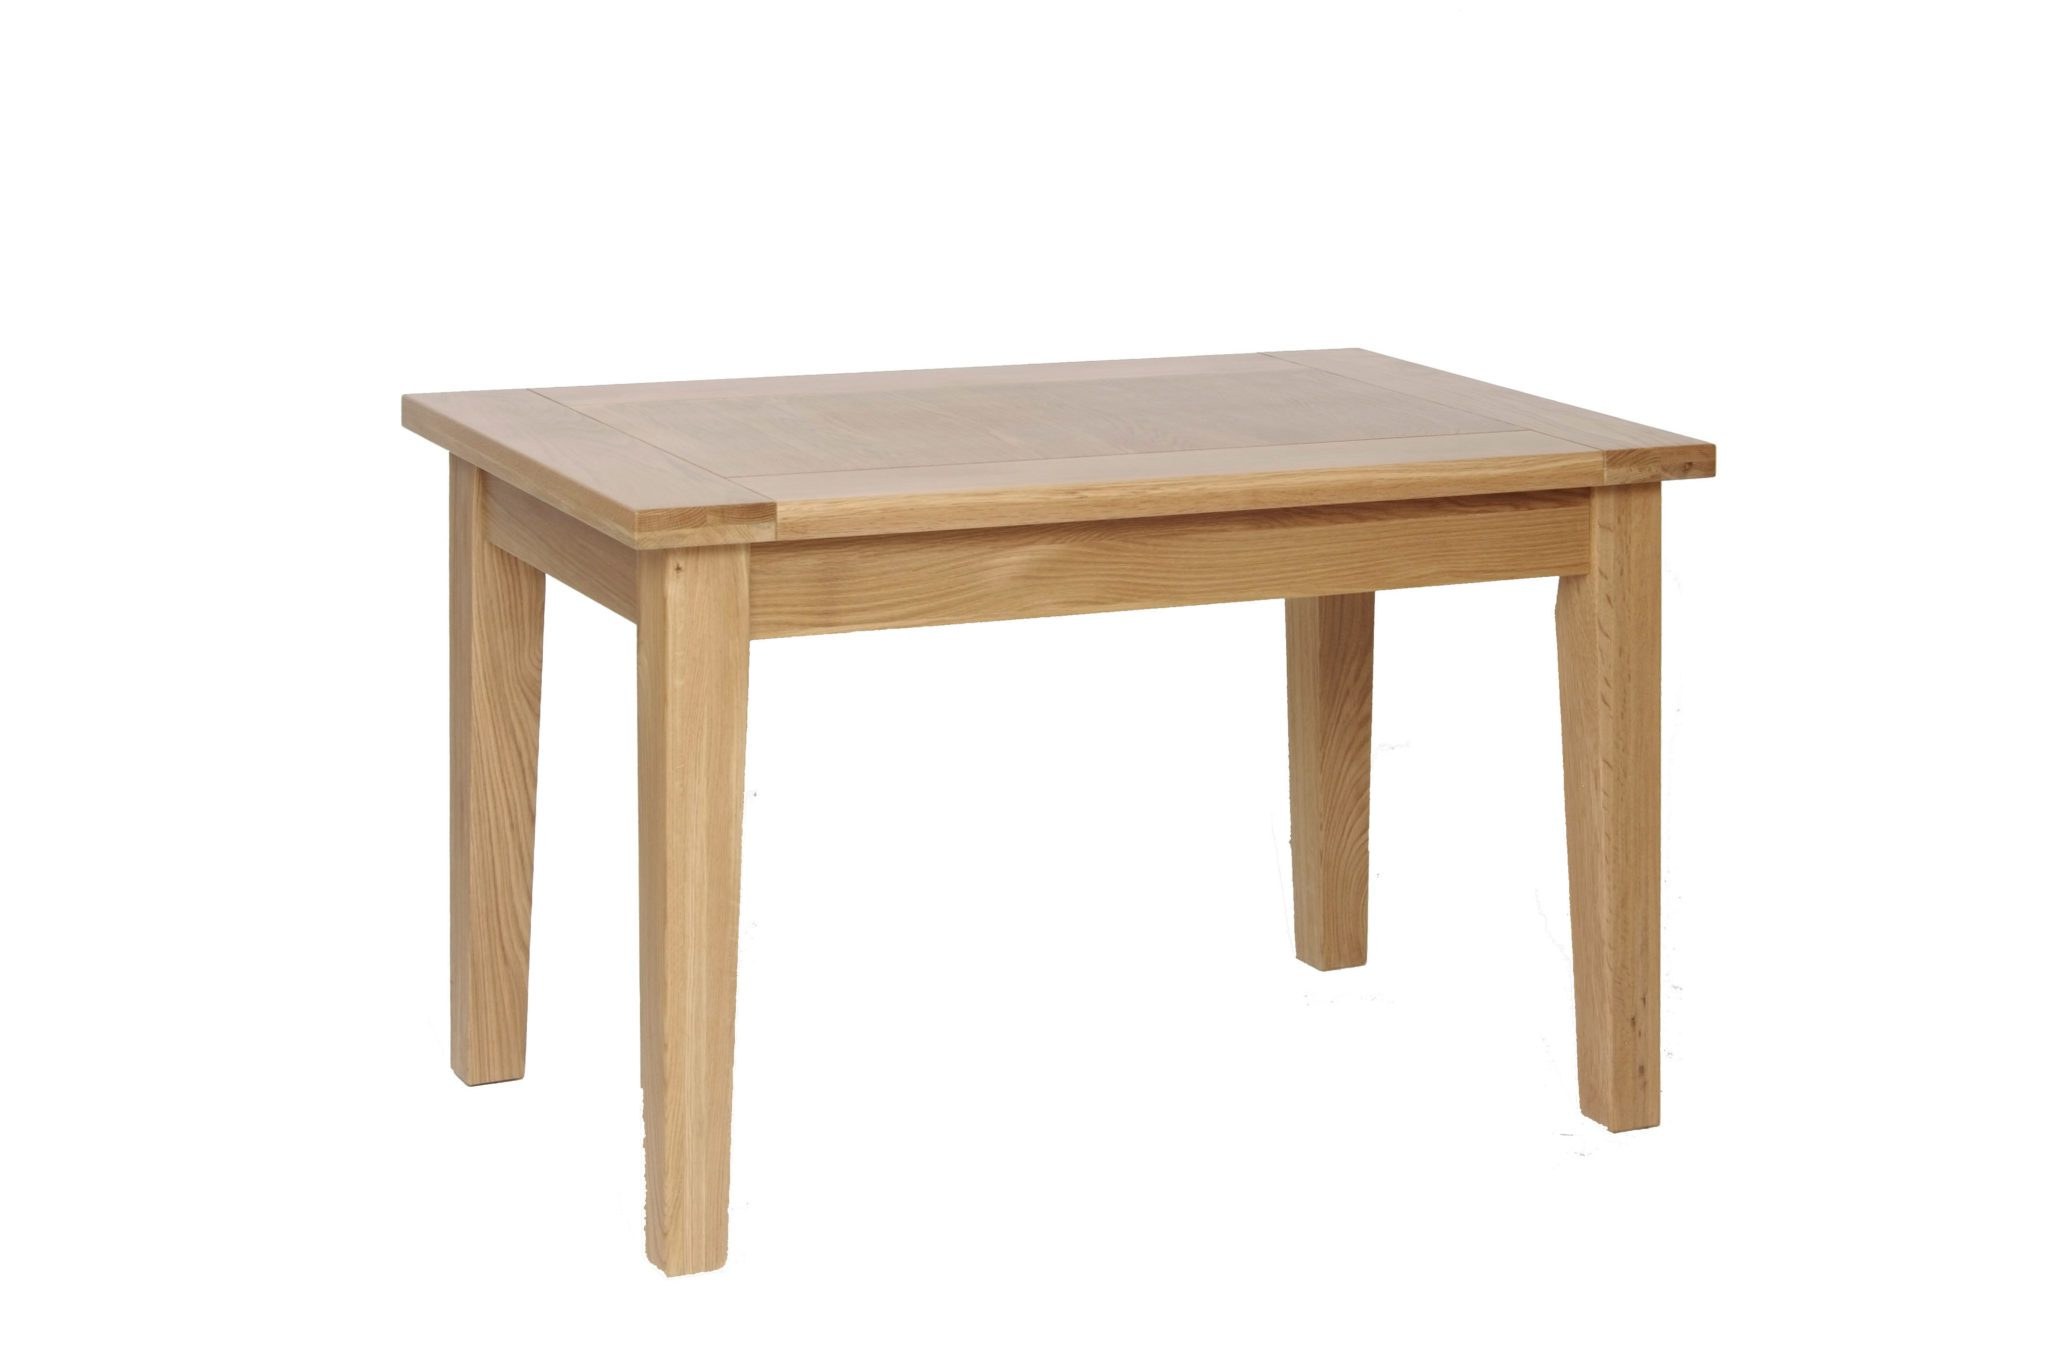 Norwich Oak 4ft x 2ft6 Fixed Top Dining Table. Contemporary shaker style with slight tapered legs. Seats 6. NNT09